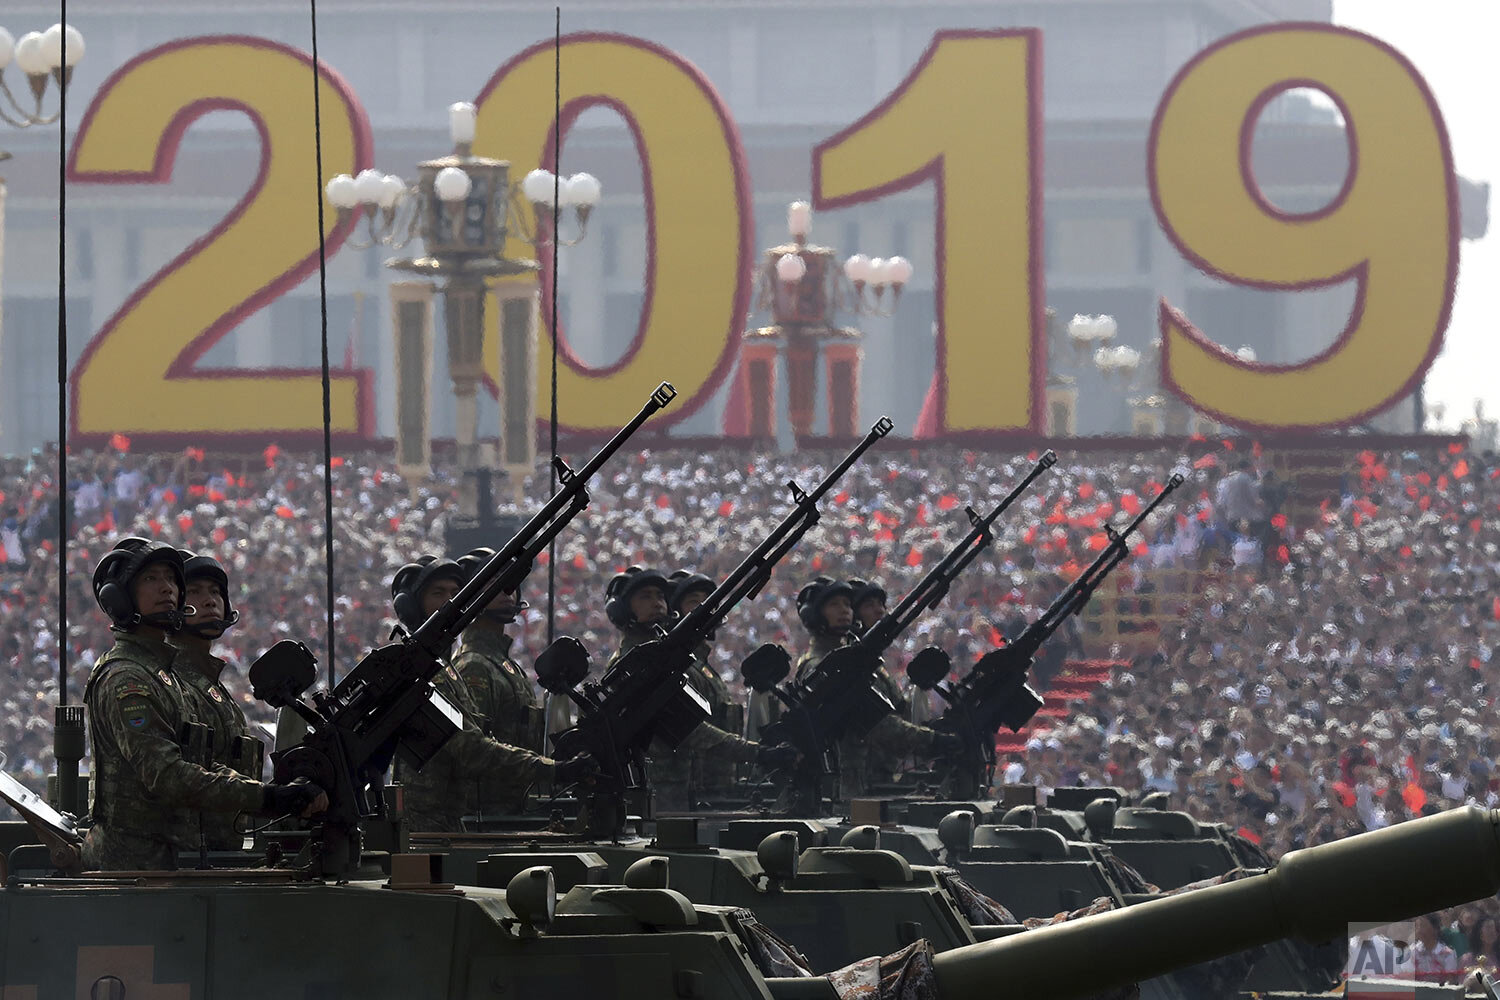 Army vehicles roll down during a parade to commemorate the 70th anniversary of the founding of Communist China in Beijing, Tuesday, Oct. 1, 2019. (AP Photo/Ng Han Guan)